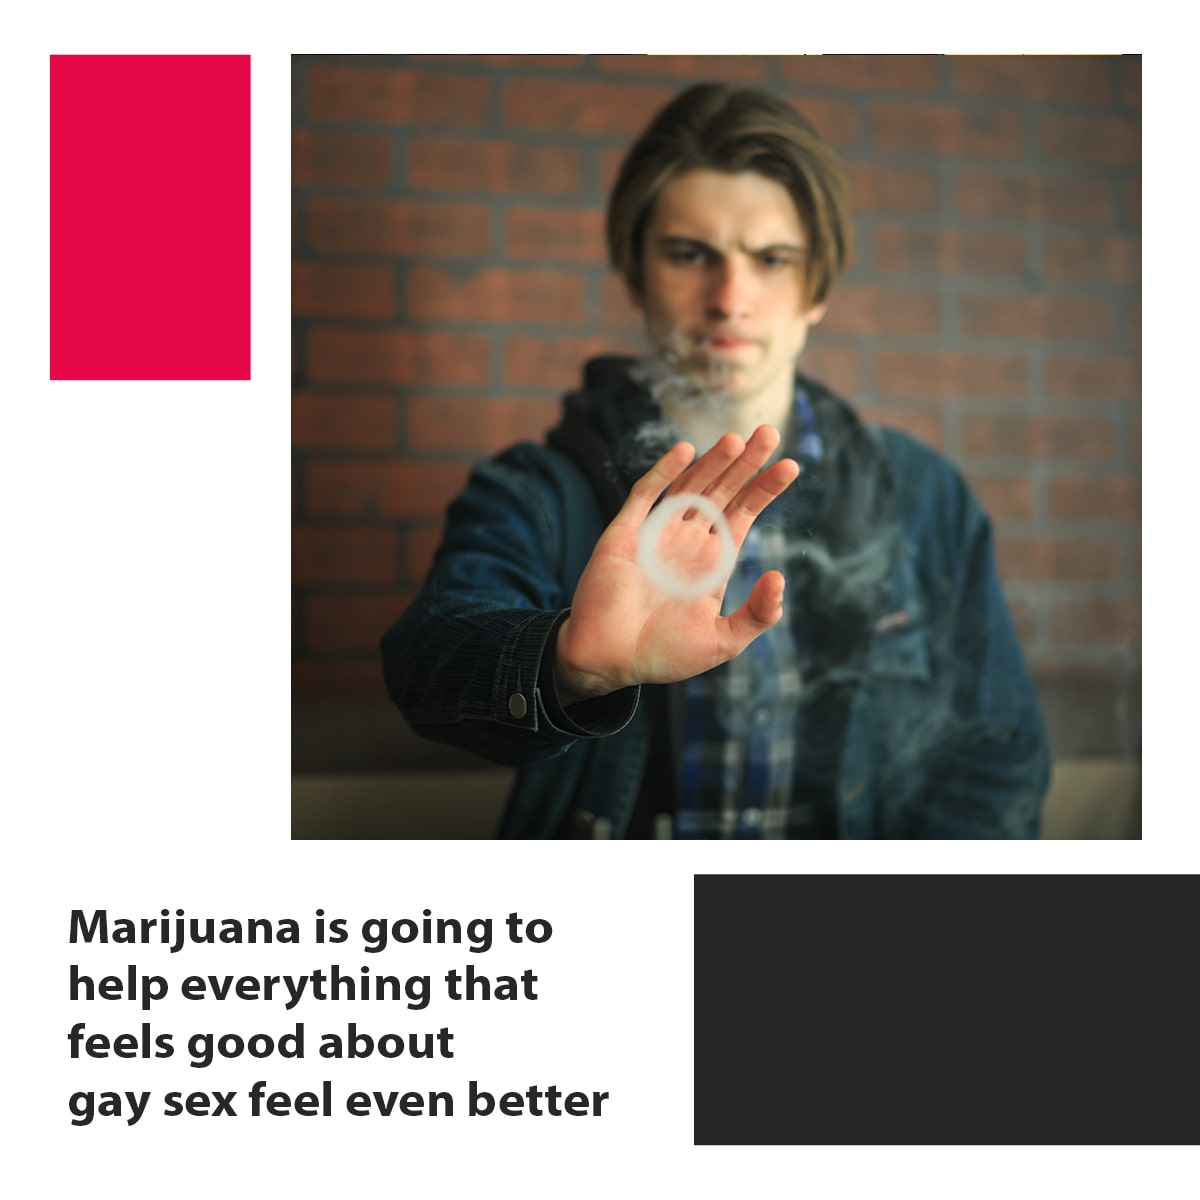 Gay Sex While High on Pot